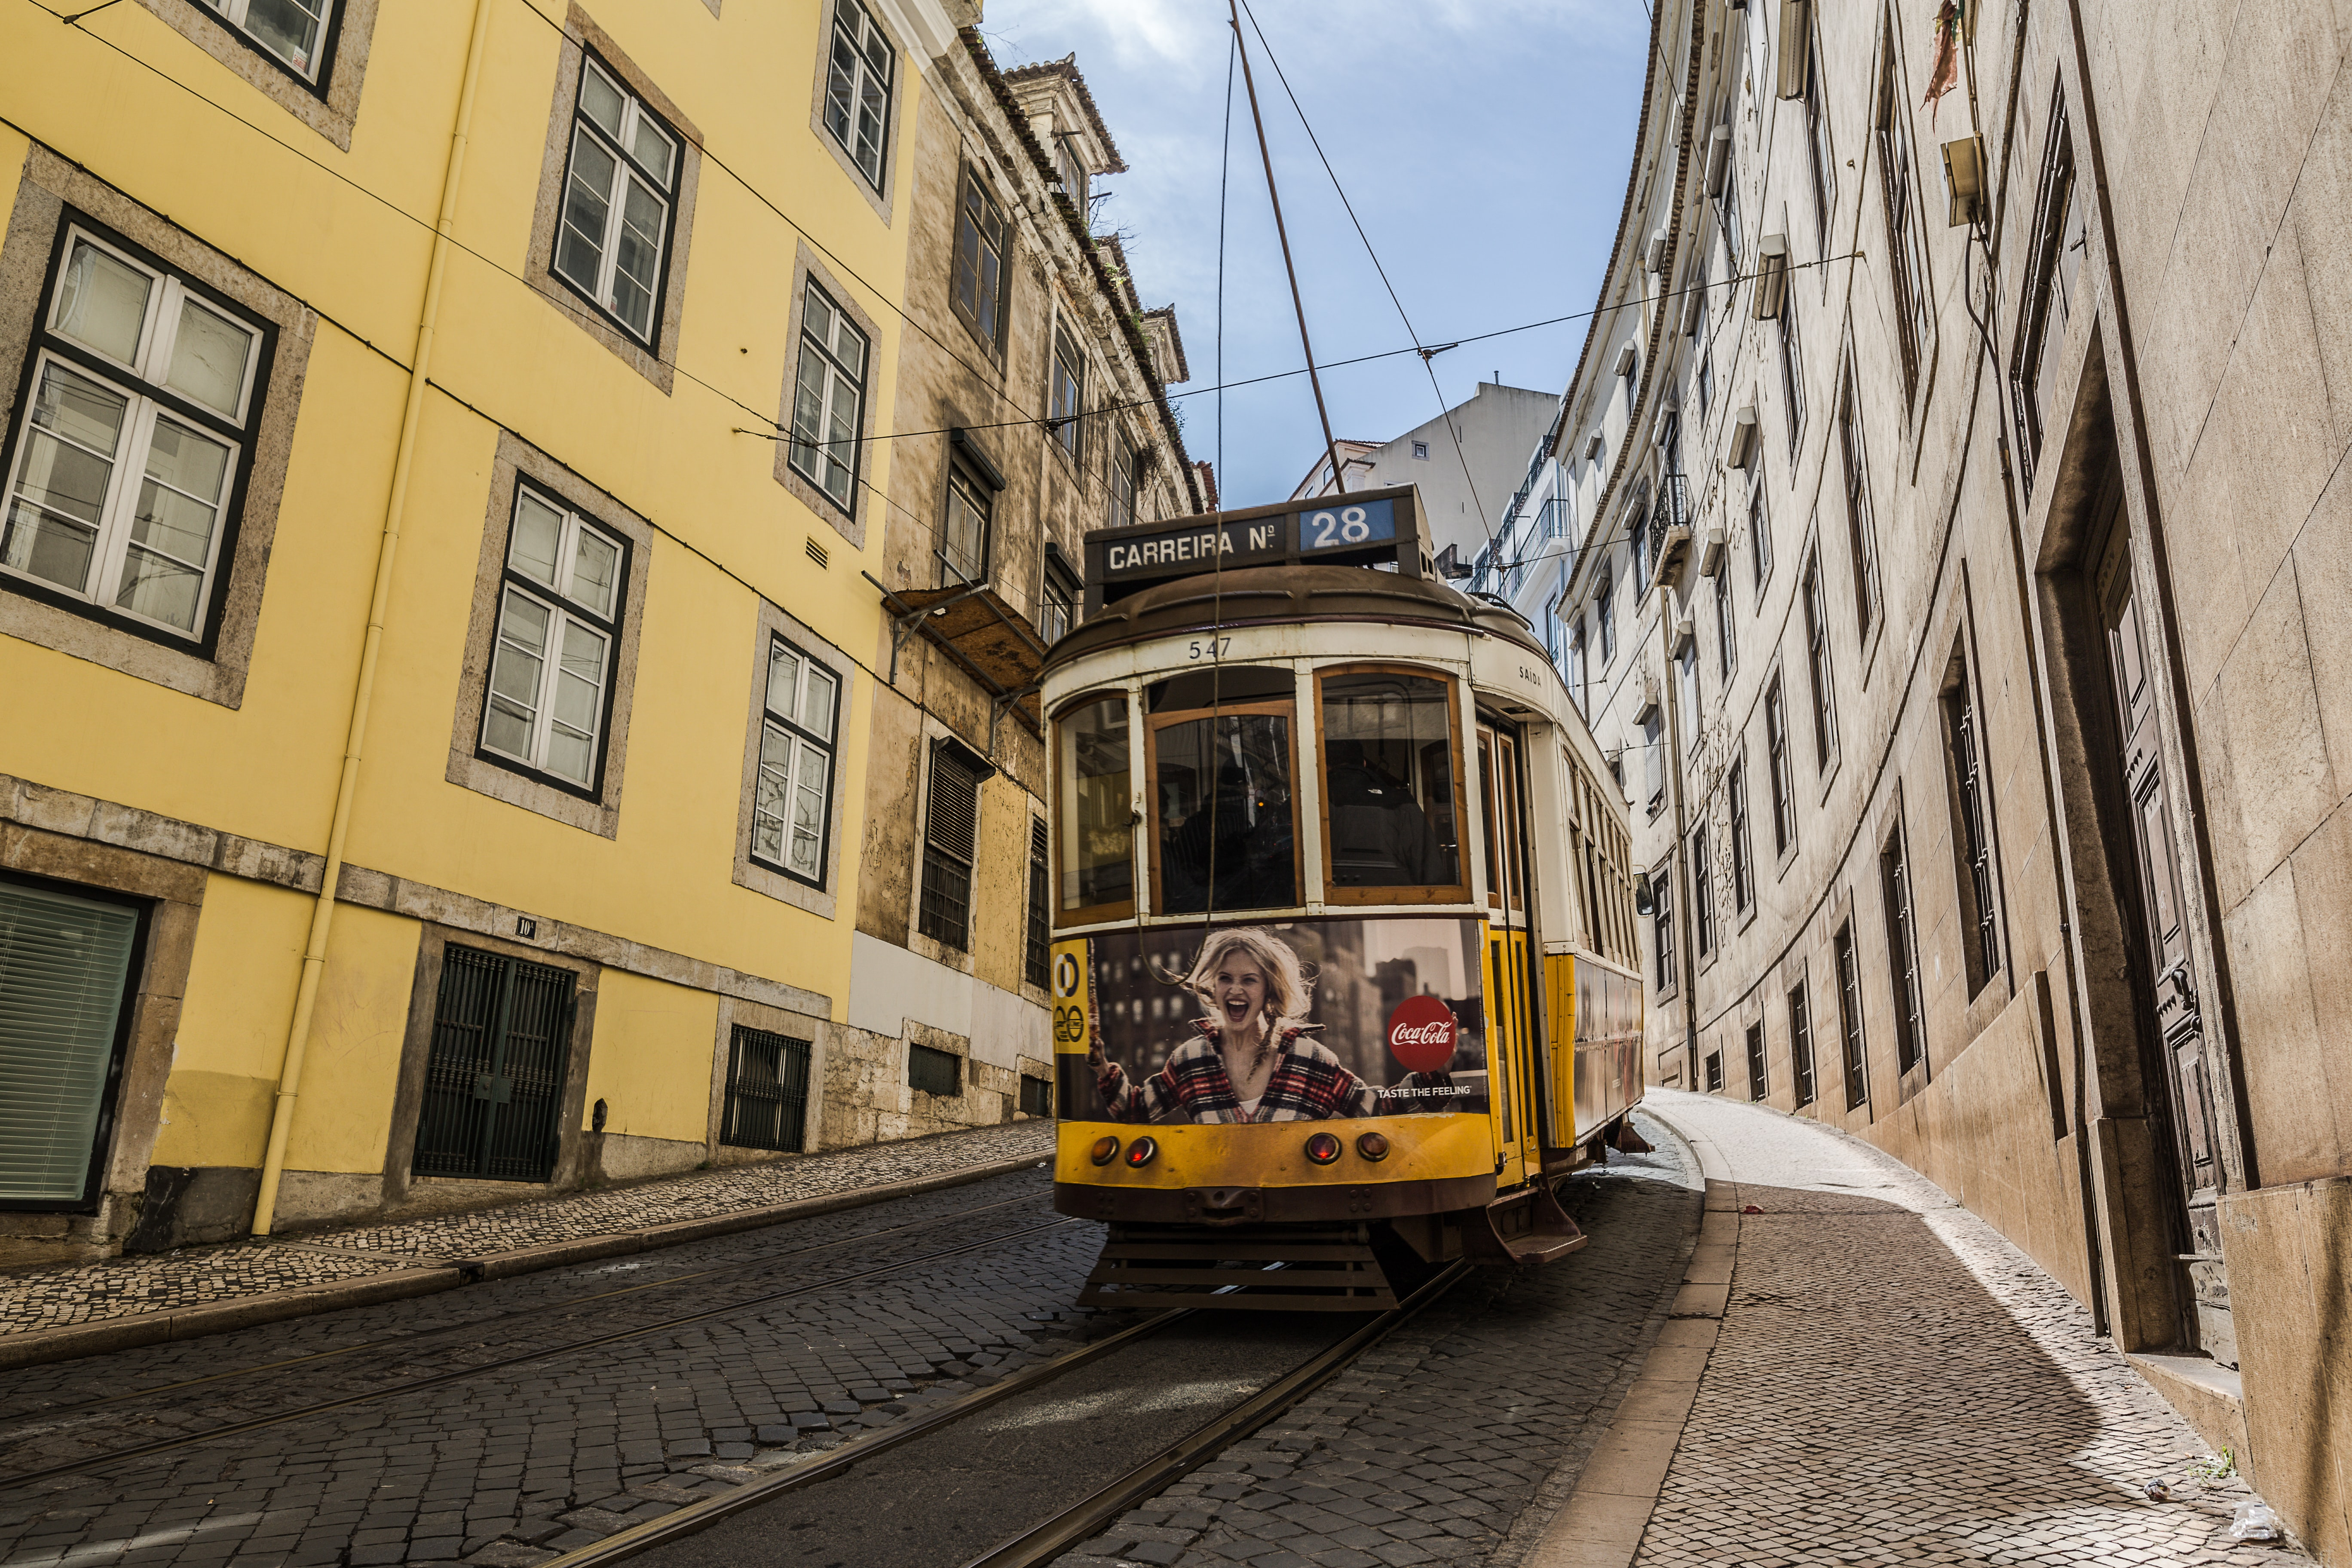 yellow tram car in between buildings